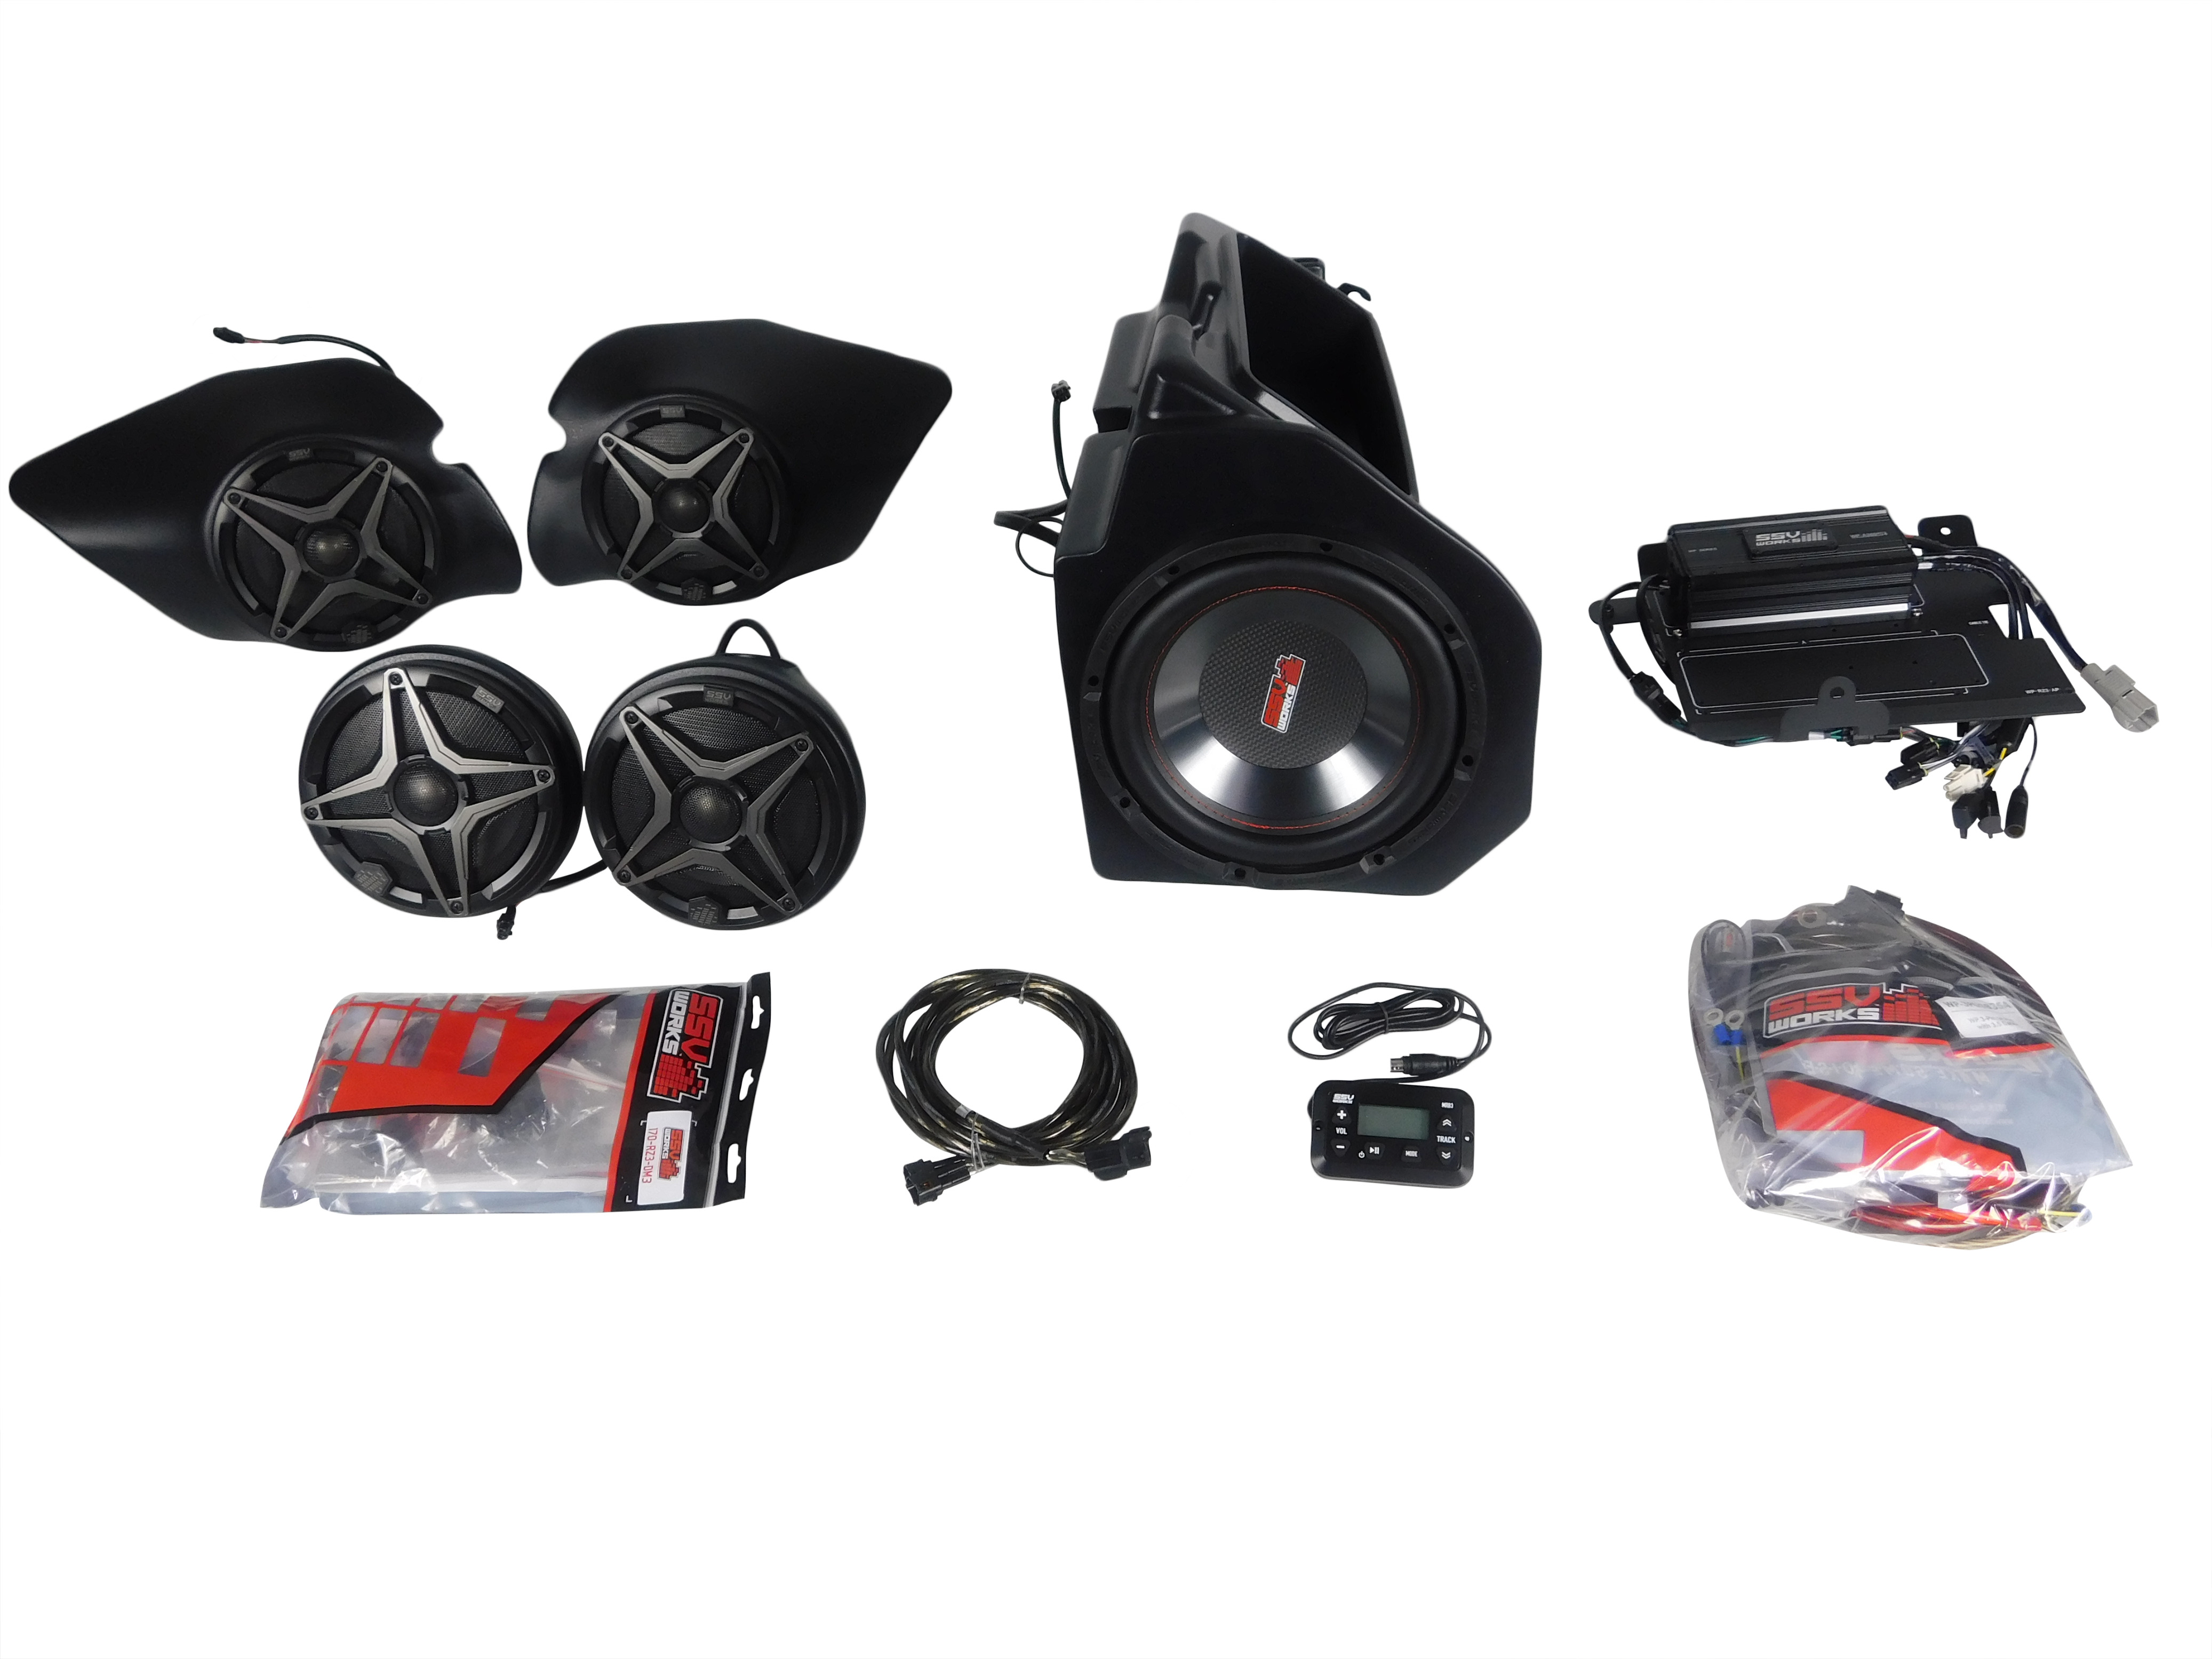 SSV-WorksRZ3-5A-POLARIS-RZR-XP-1000-SSV-5-SPEAKER-PLUG-AND-PLAY-image-1